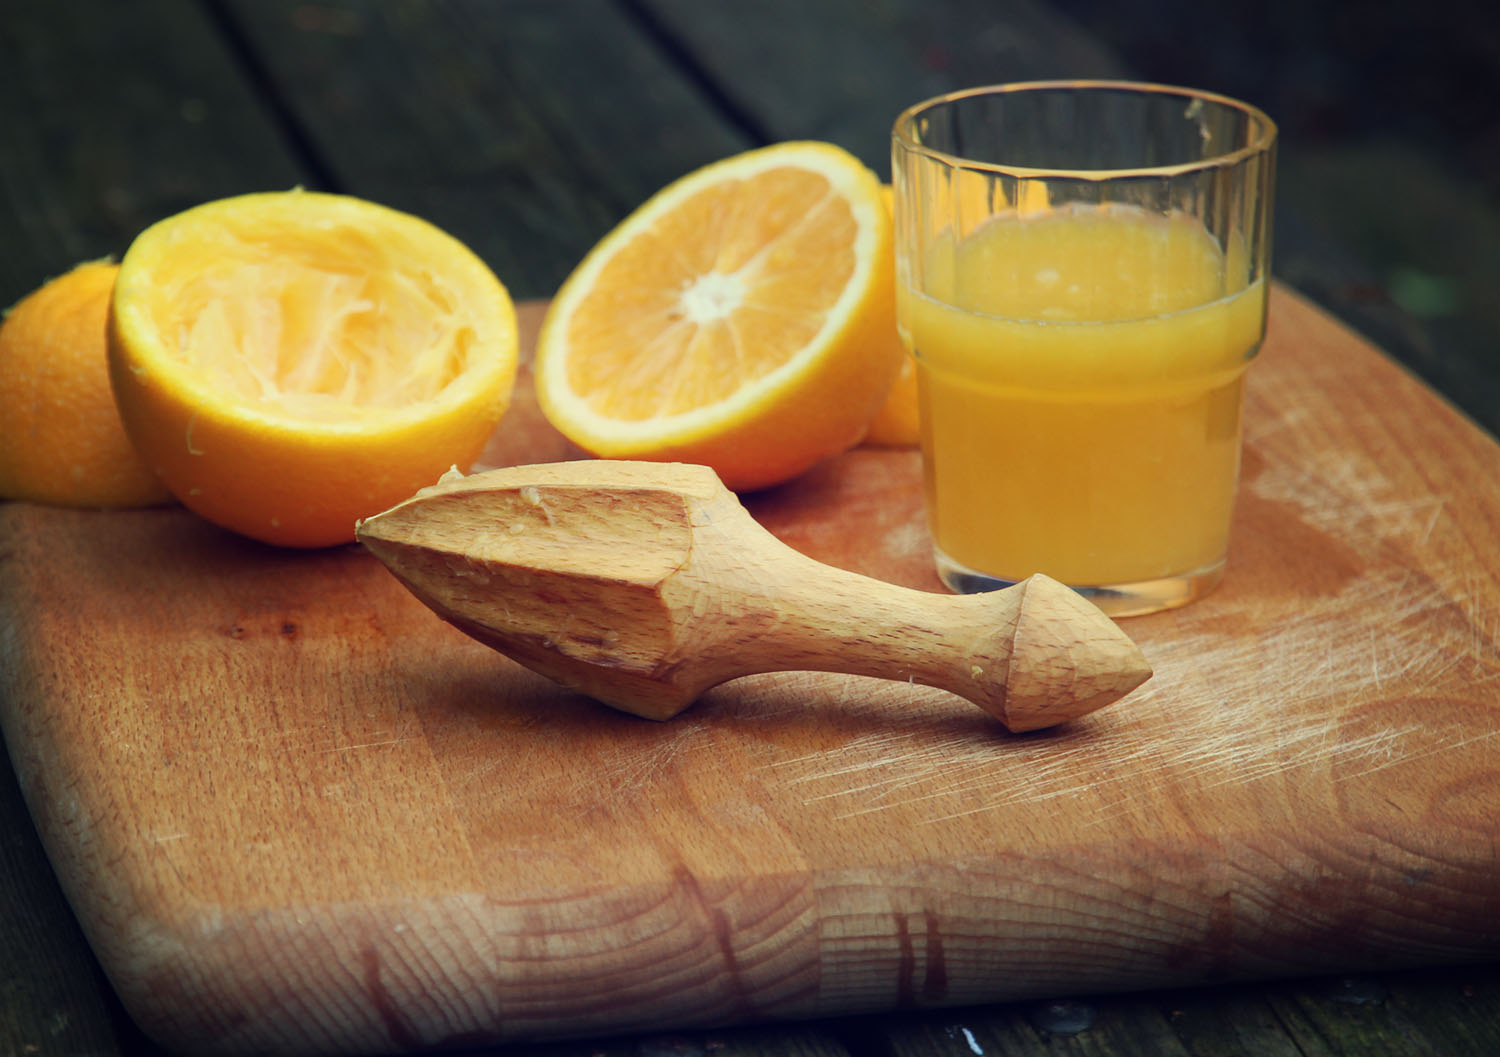 You should really treat yourself to a beech reamer to make your morning orange juice...